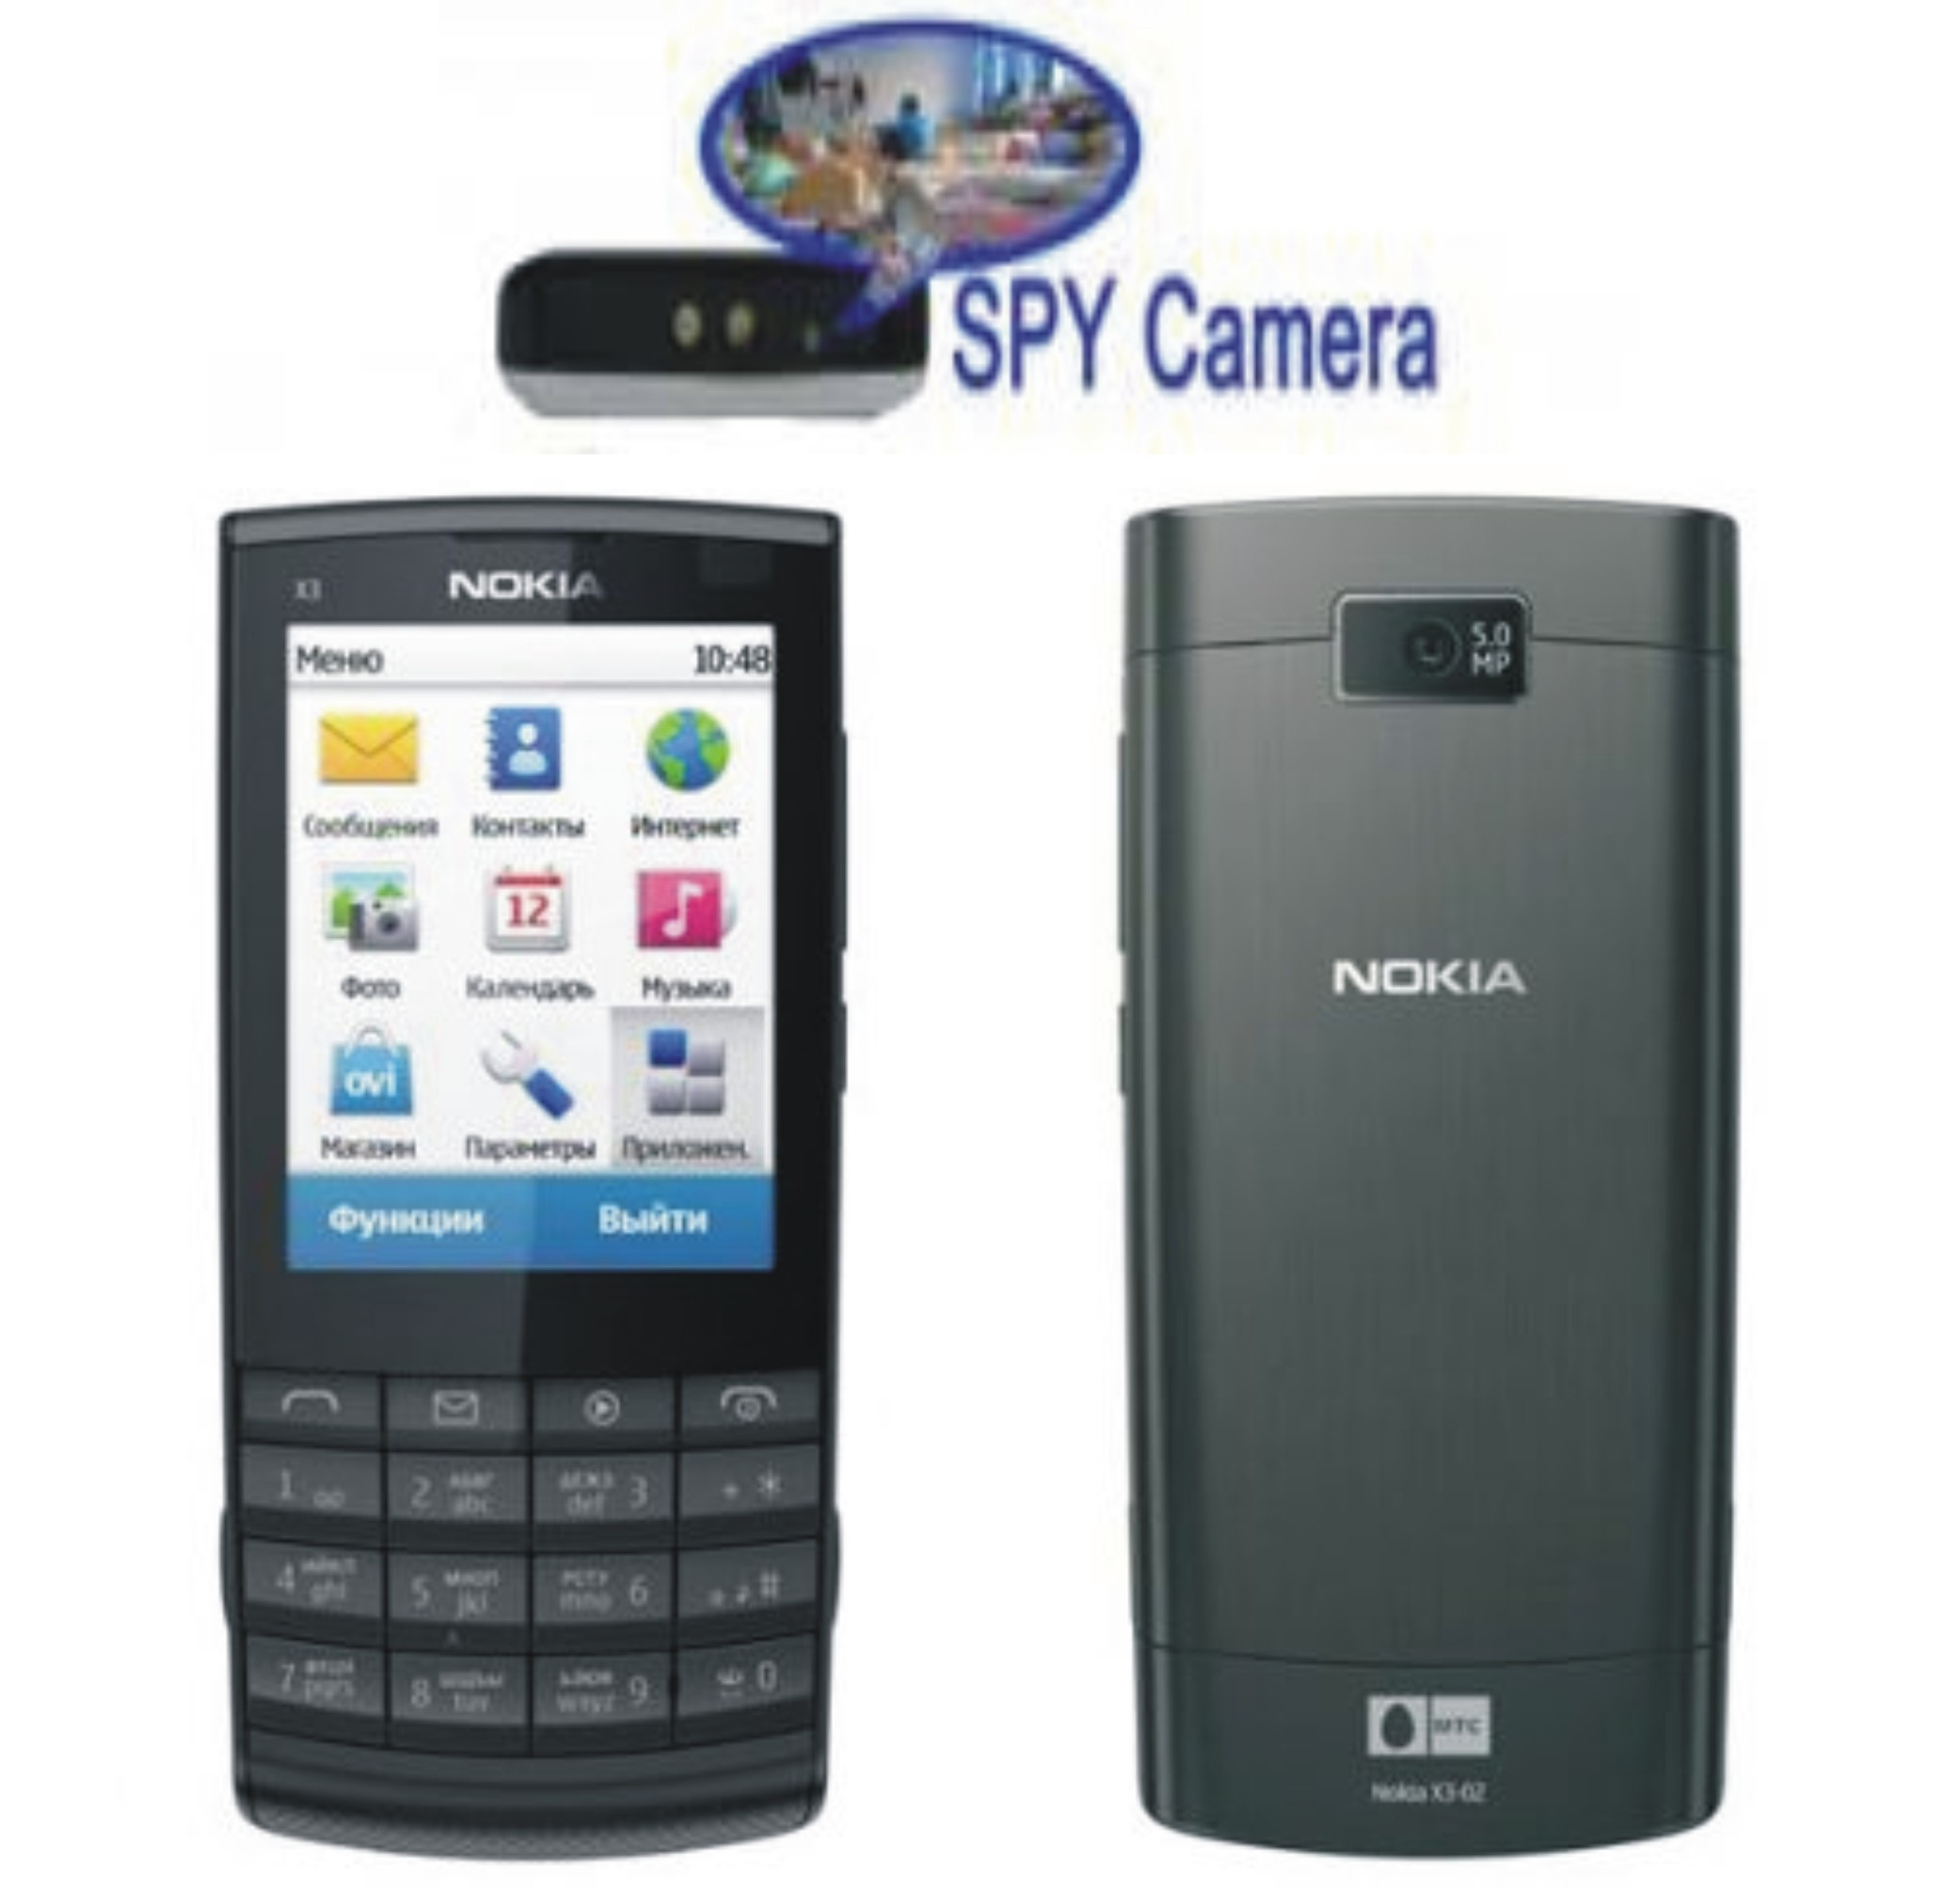 Spy Camera In Nokia Phone Touch Screen In Balrampur